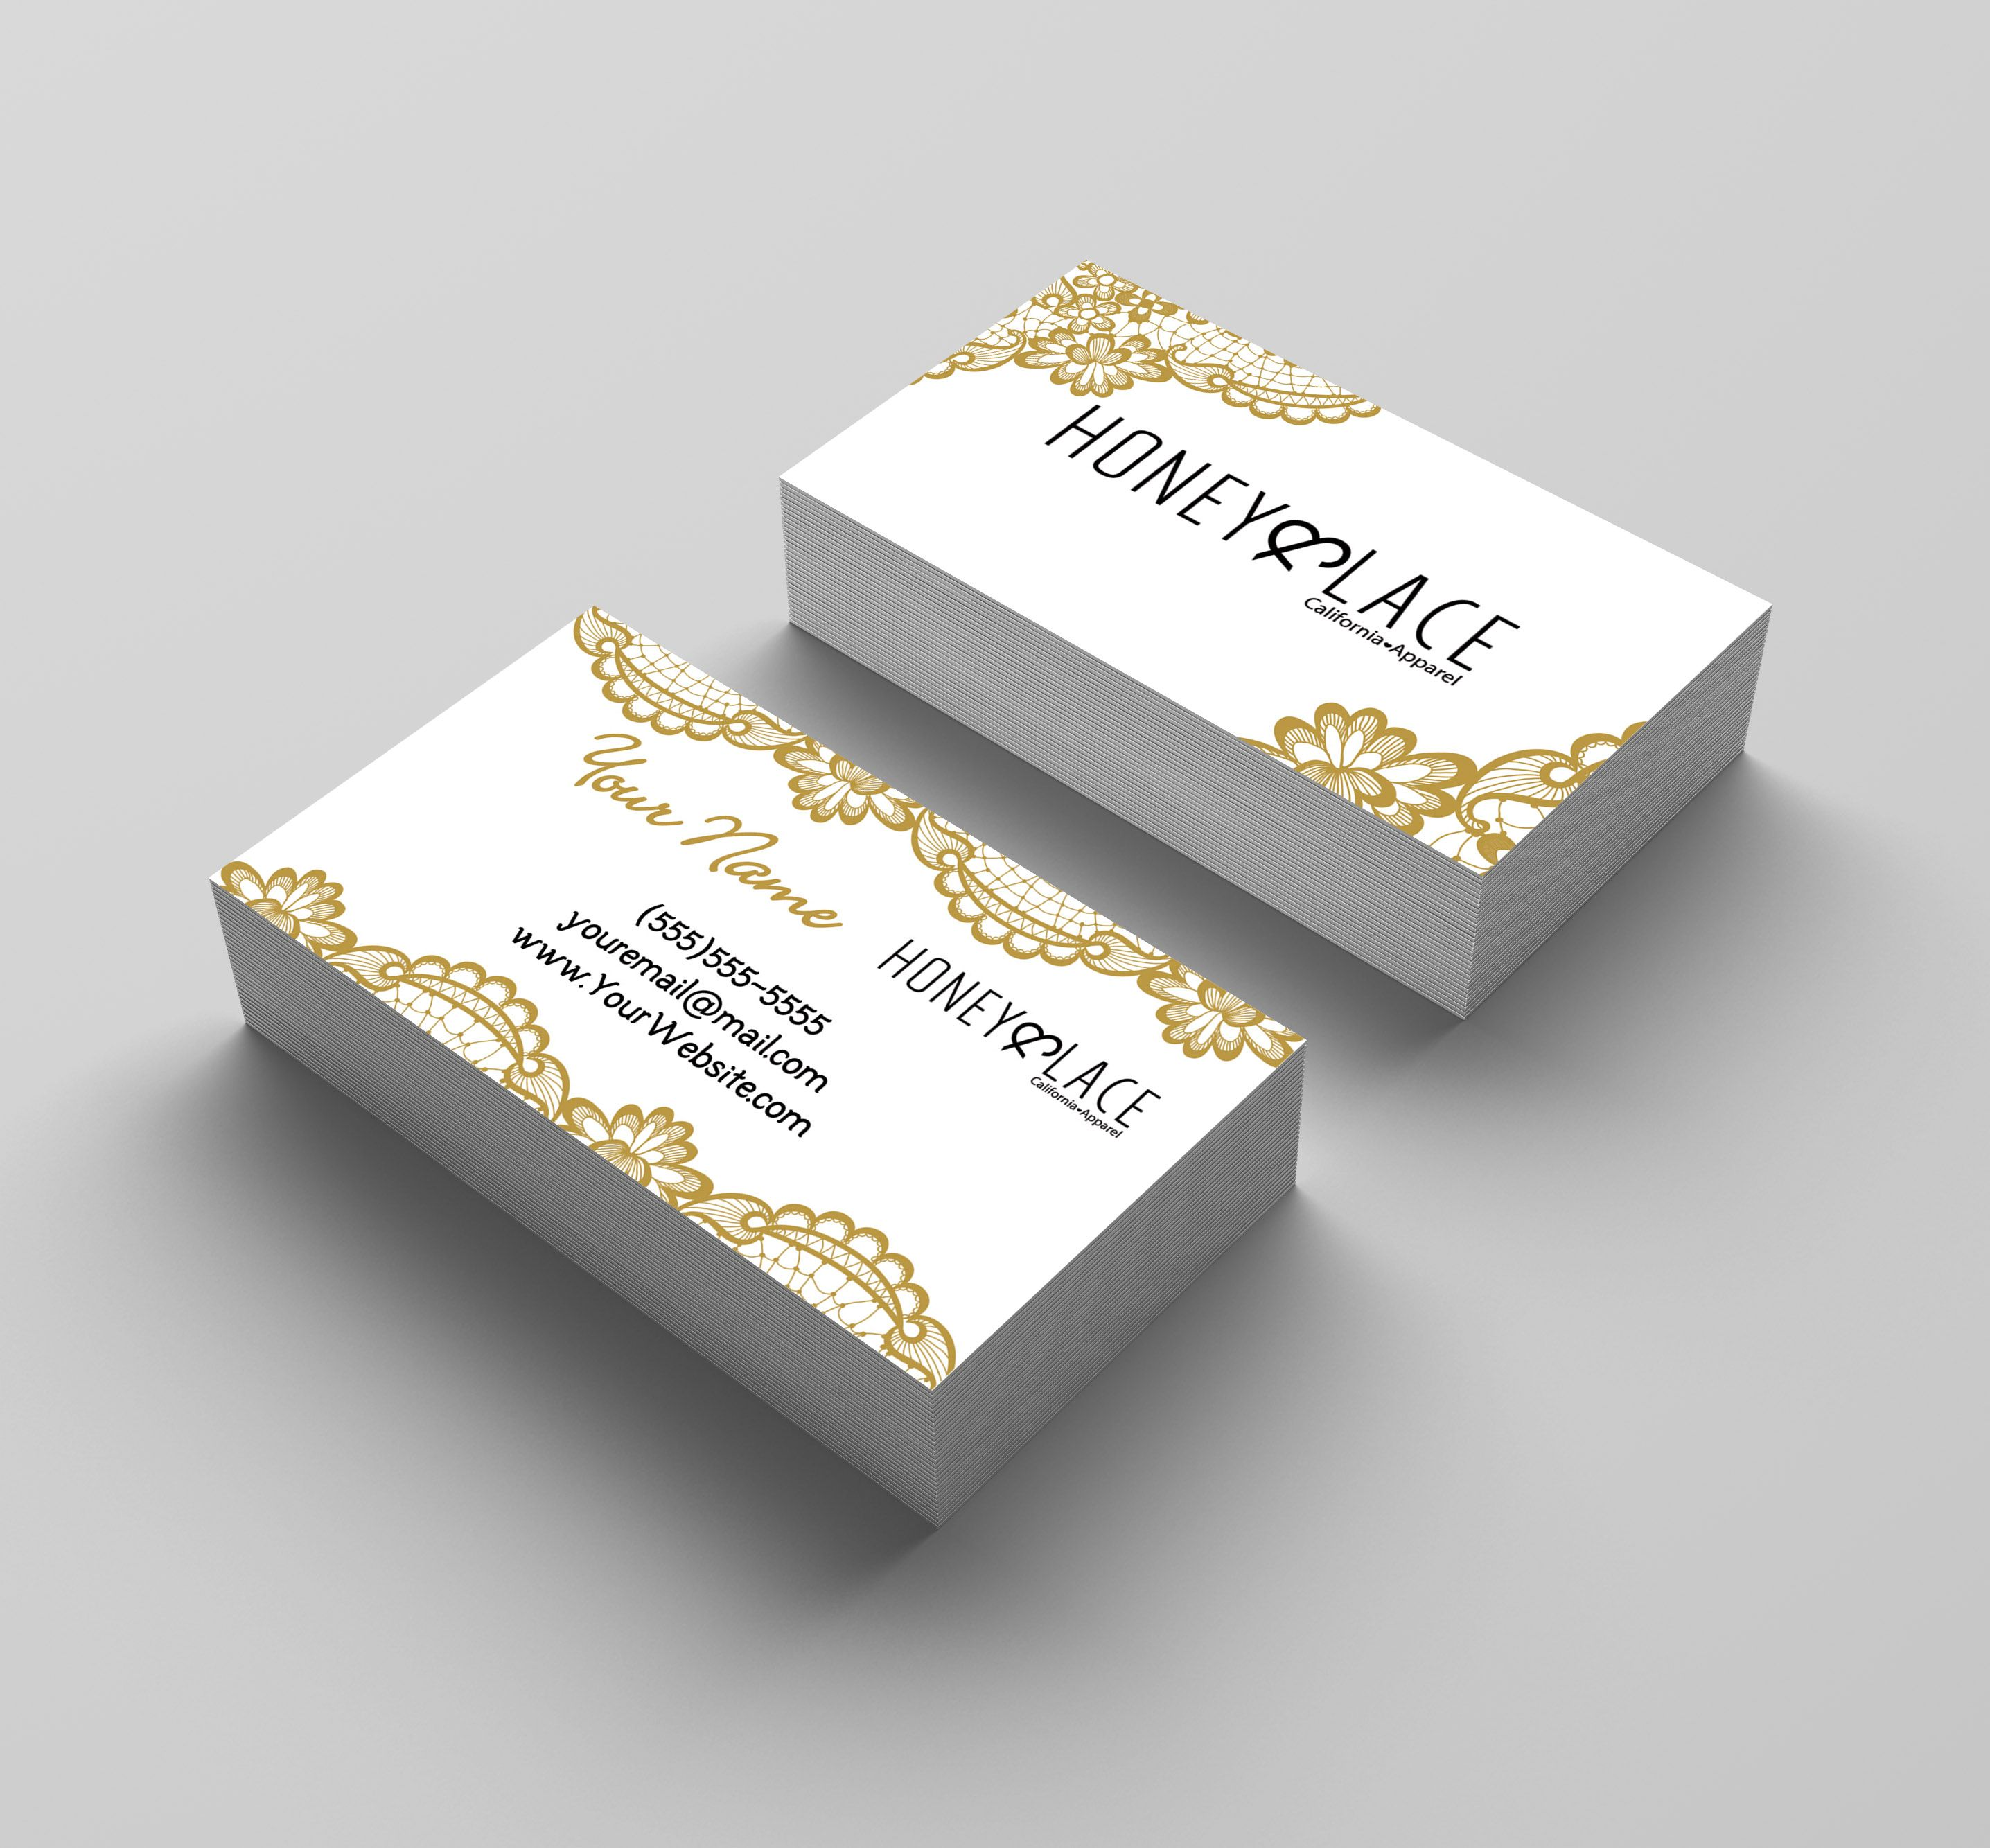 P Phany Business Card 02 Lace Kakaodesigns Lace Print Ticket Card Classic Business Card